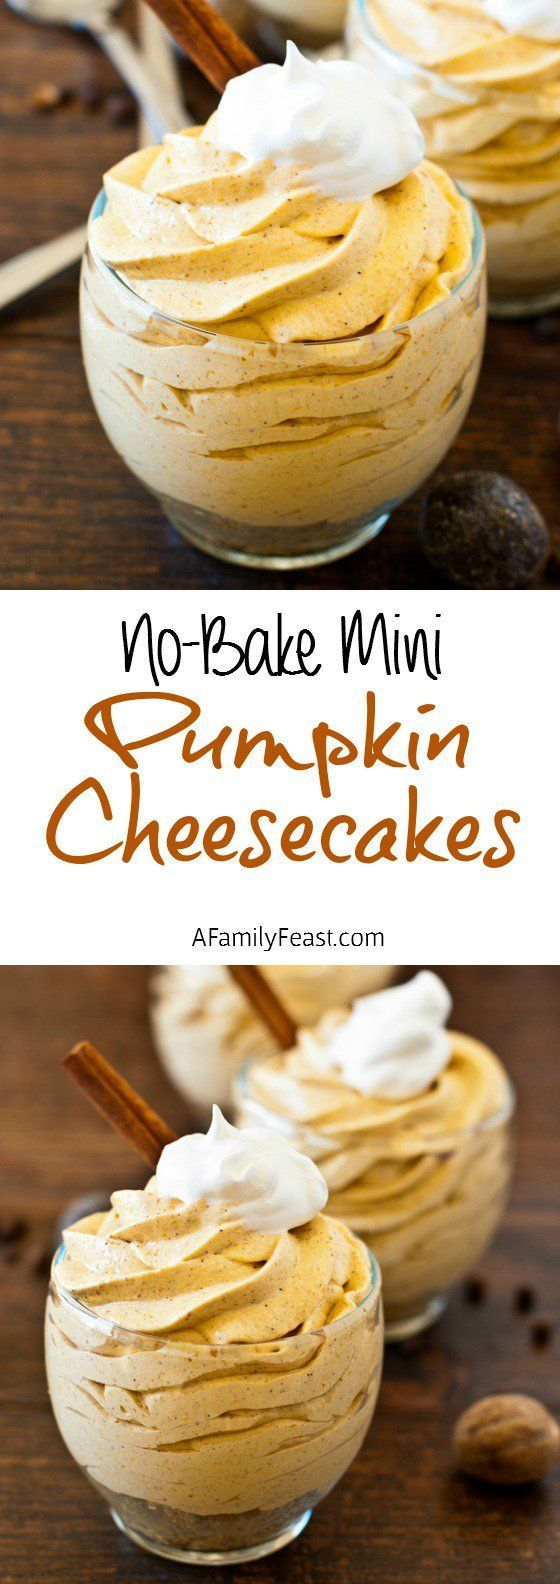 reason So make good size Cheesecakes   Bake recipe to has so simple been mens a this and No over fitflops  There     s Pumpkin times   pinned delicious    Mini